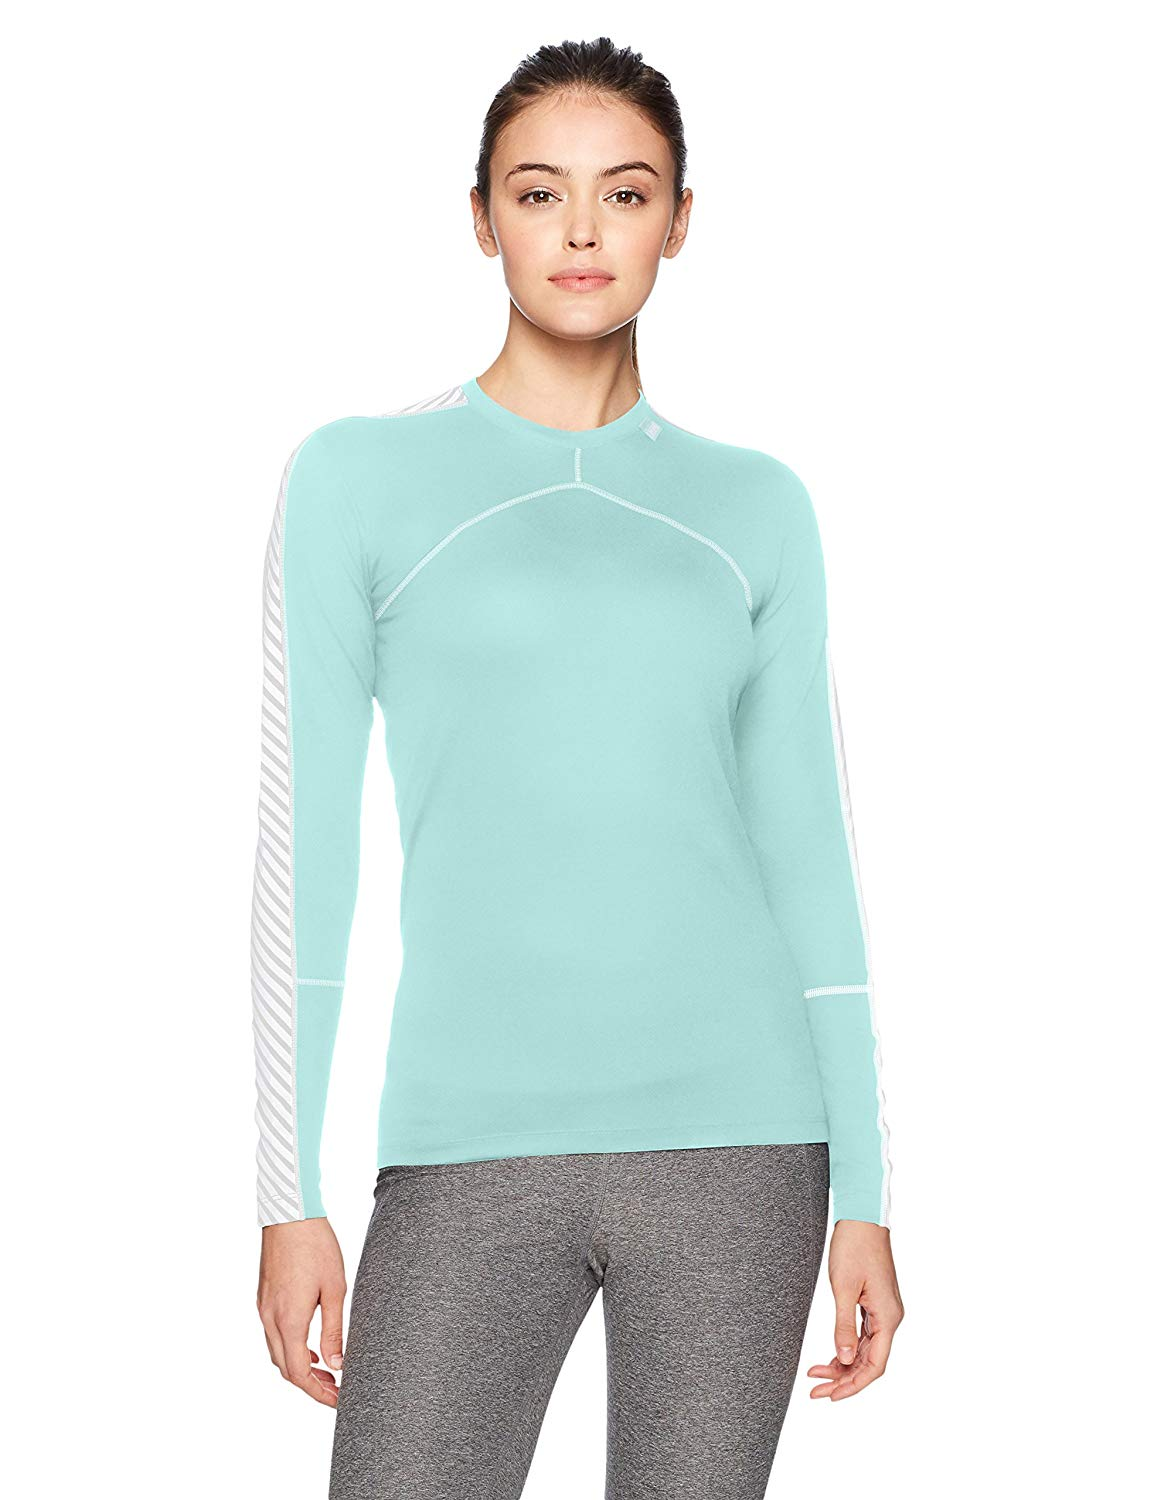 b927286f7c Get Quotations · Helly Hansen Women's LIFA Stripe Crew Neck Long Sleeve Lightweight  Breathable Moisture Wicking Thermal Baselayer Top